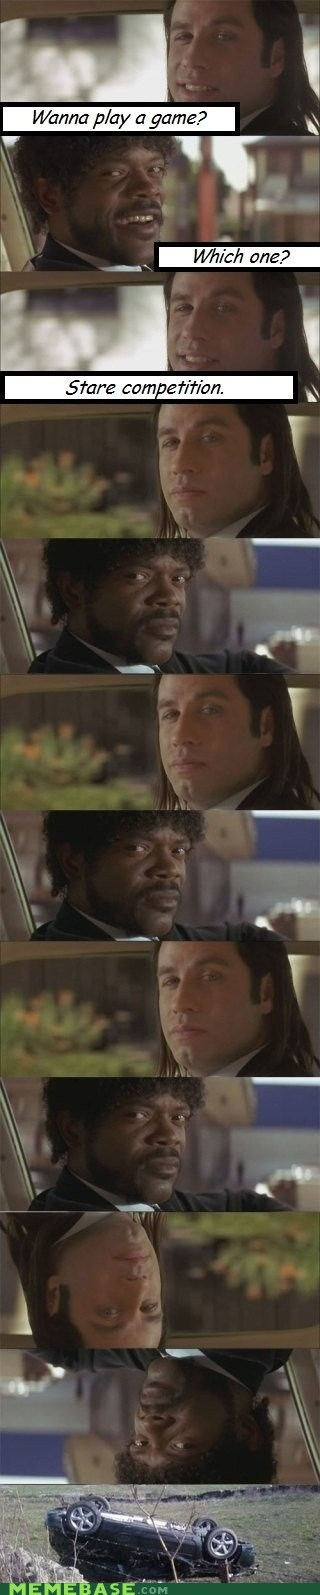 actor car accident celeb john travolta Movie pulp fiction Samuel L Jackson stare contest - 6593844224